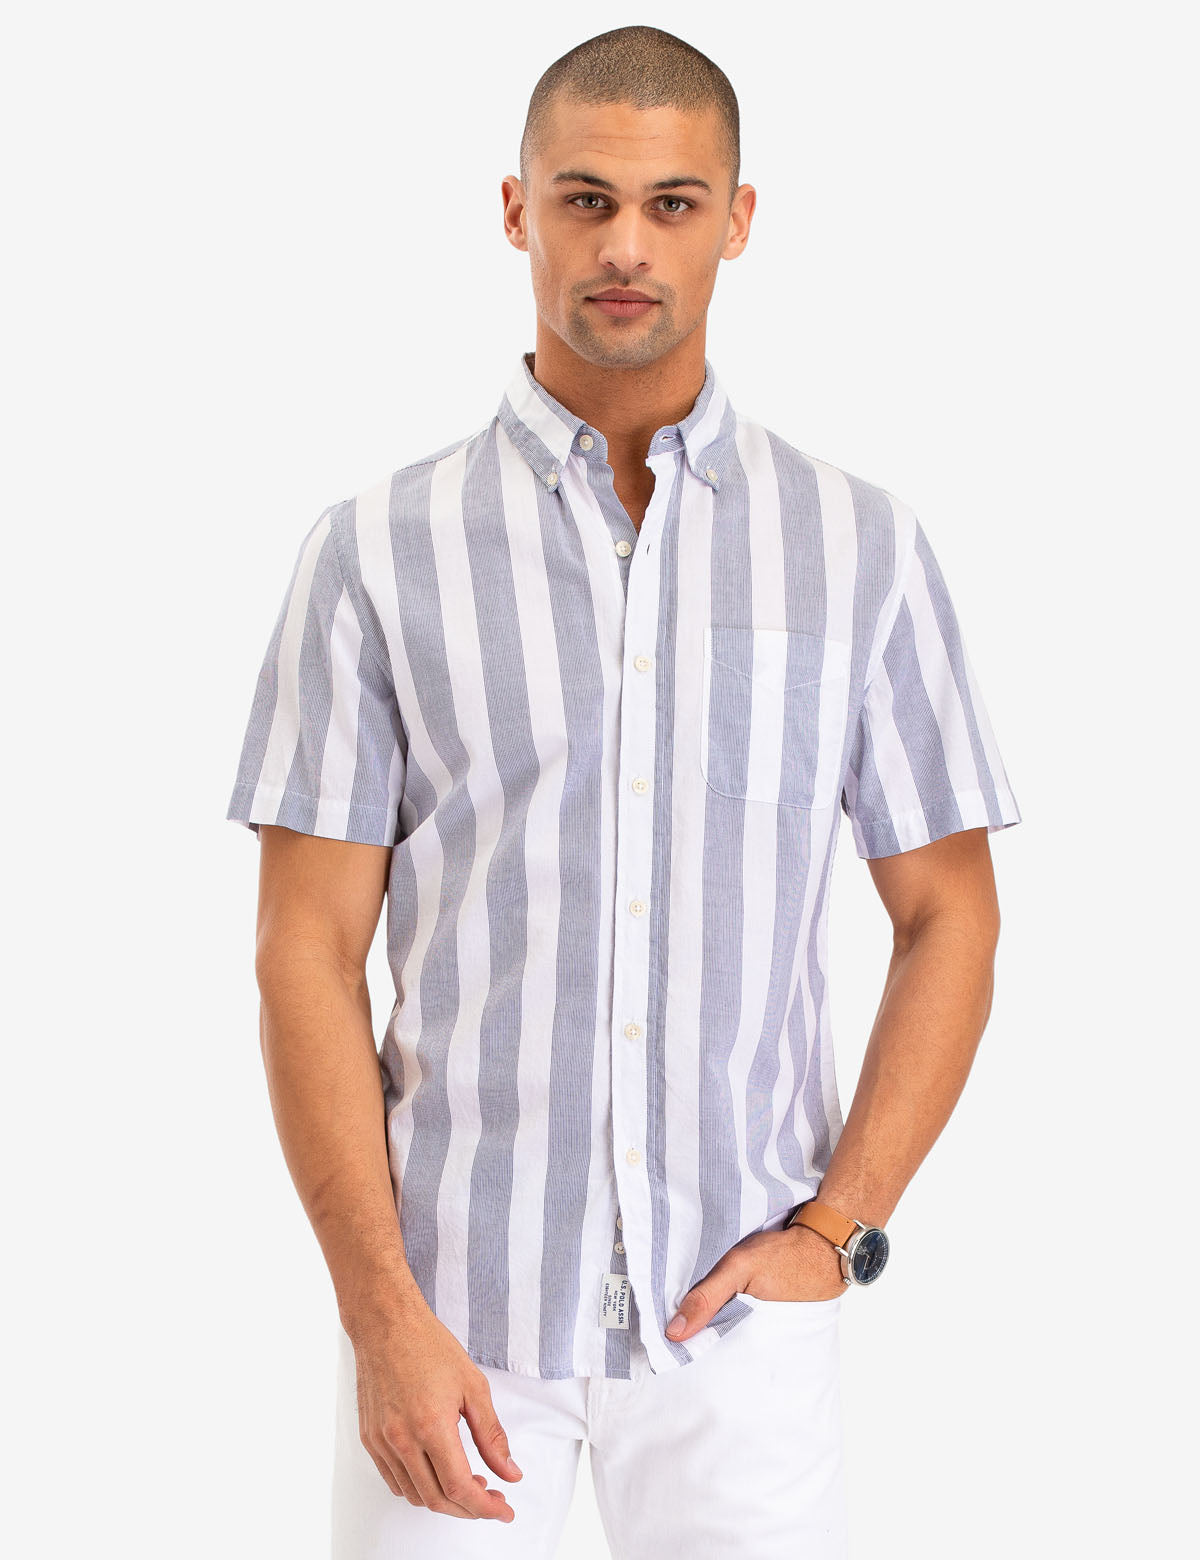 VERTICAL RETRO STRIPE SHORT SLEEVE SHIRT